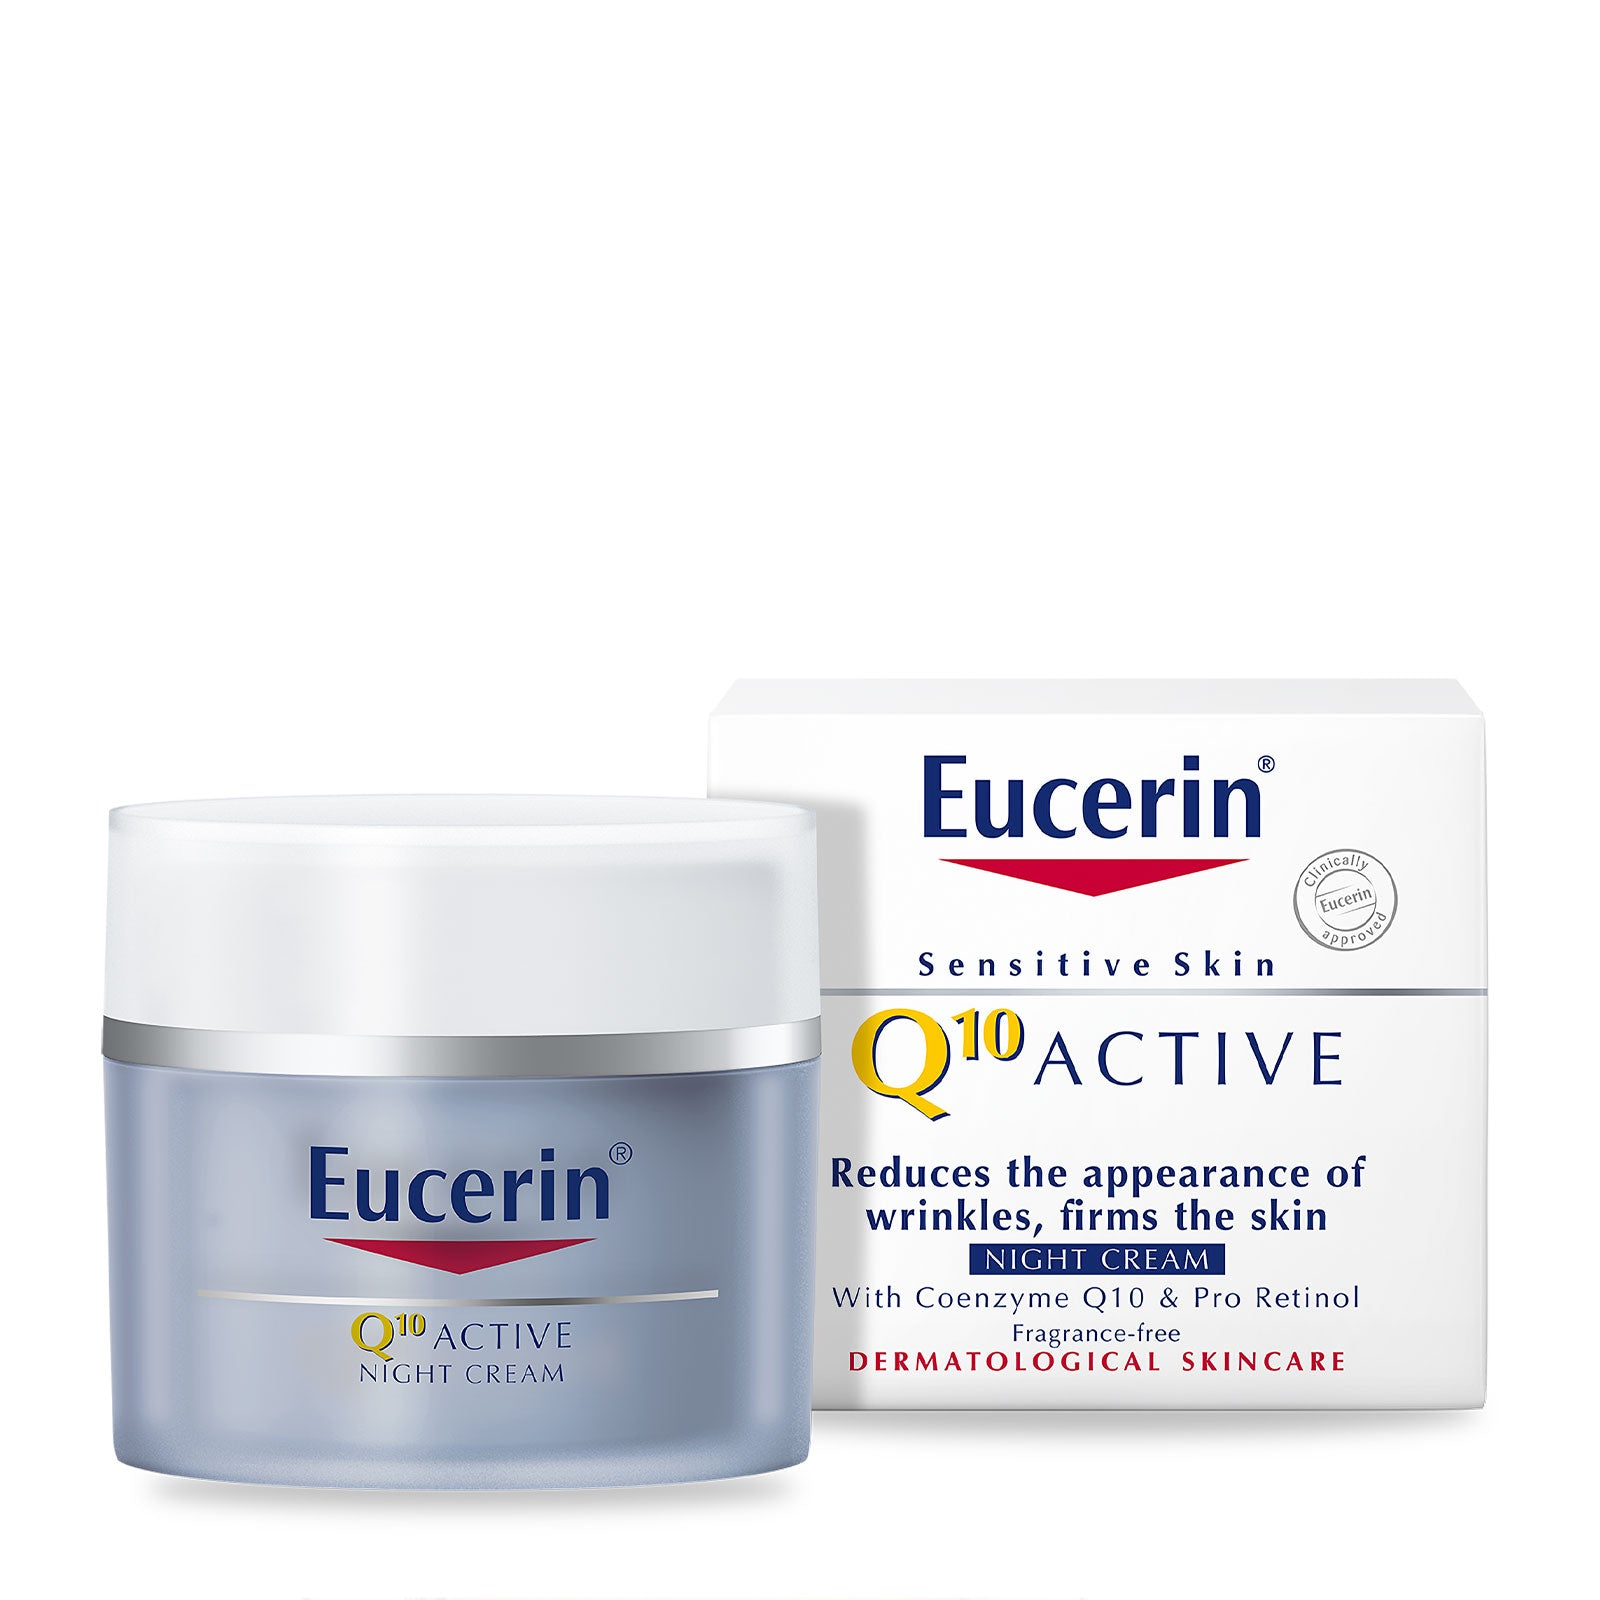 Eucerin Q10 Active Anti-Wrinkle Night Cream 50ml